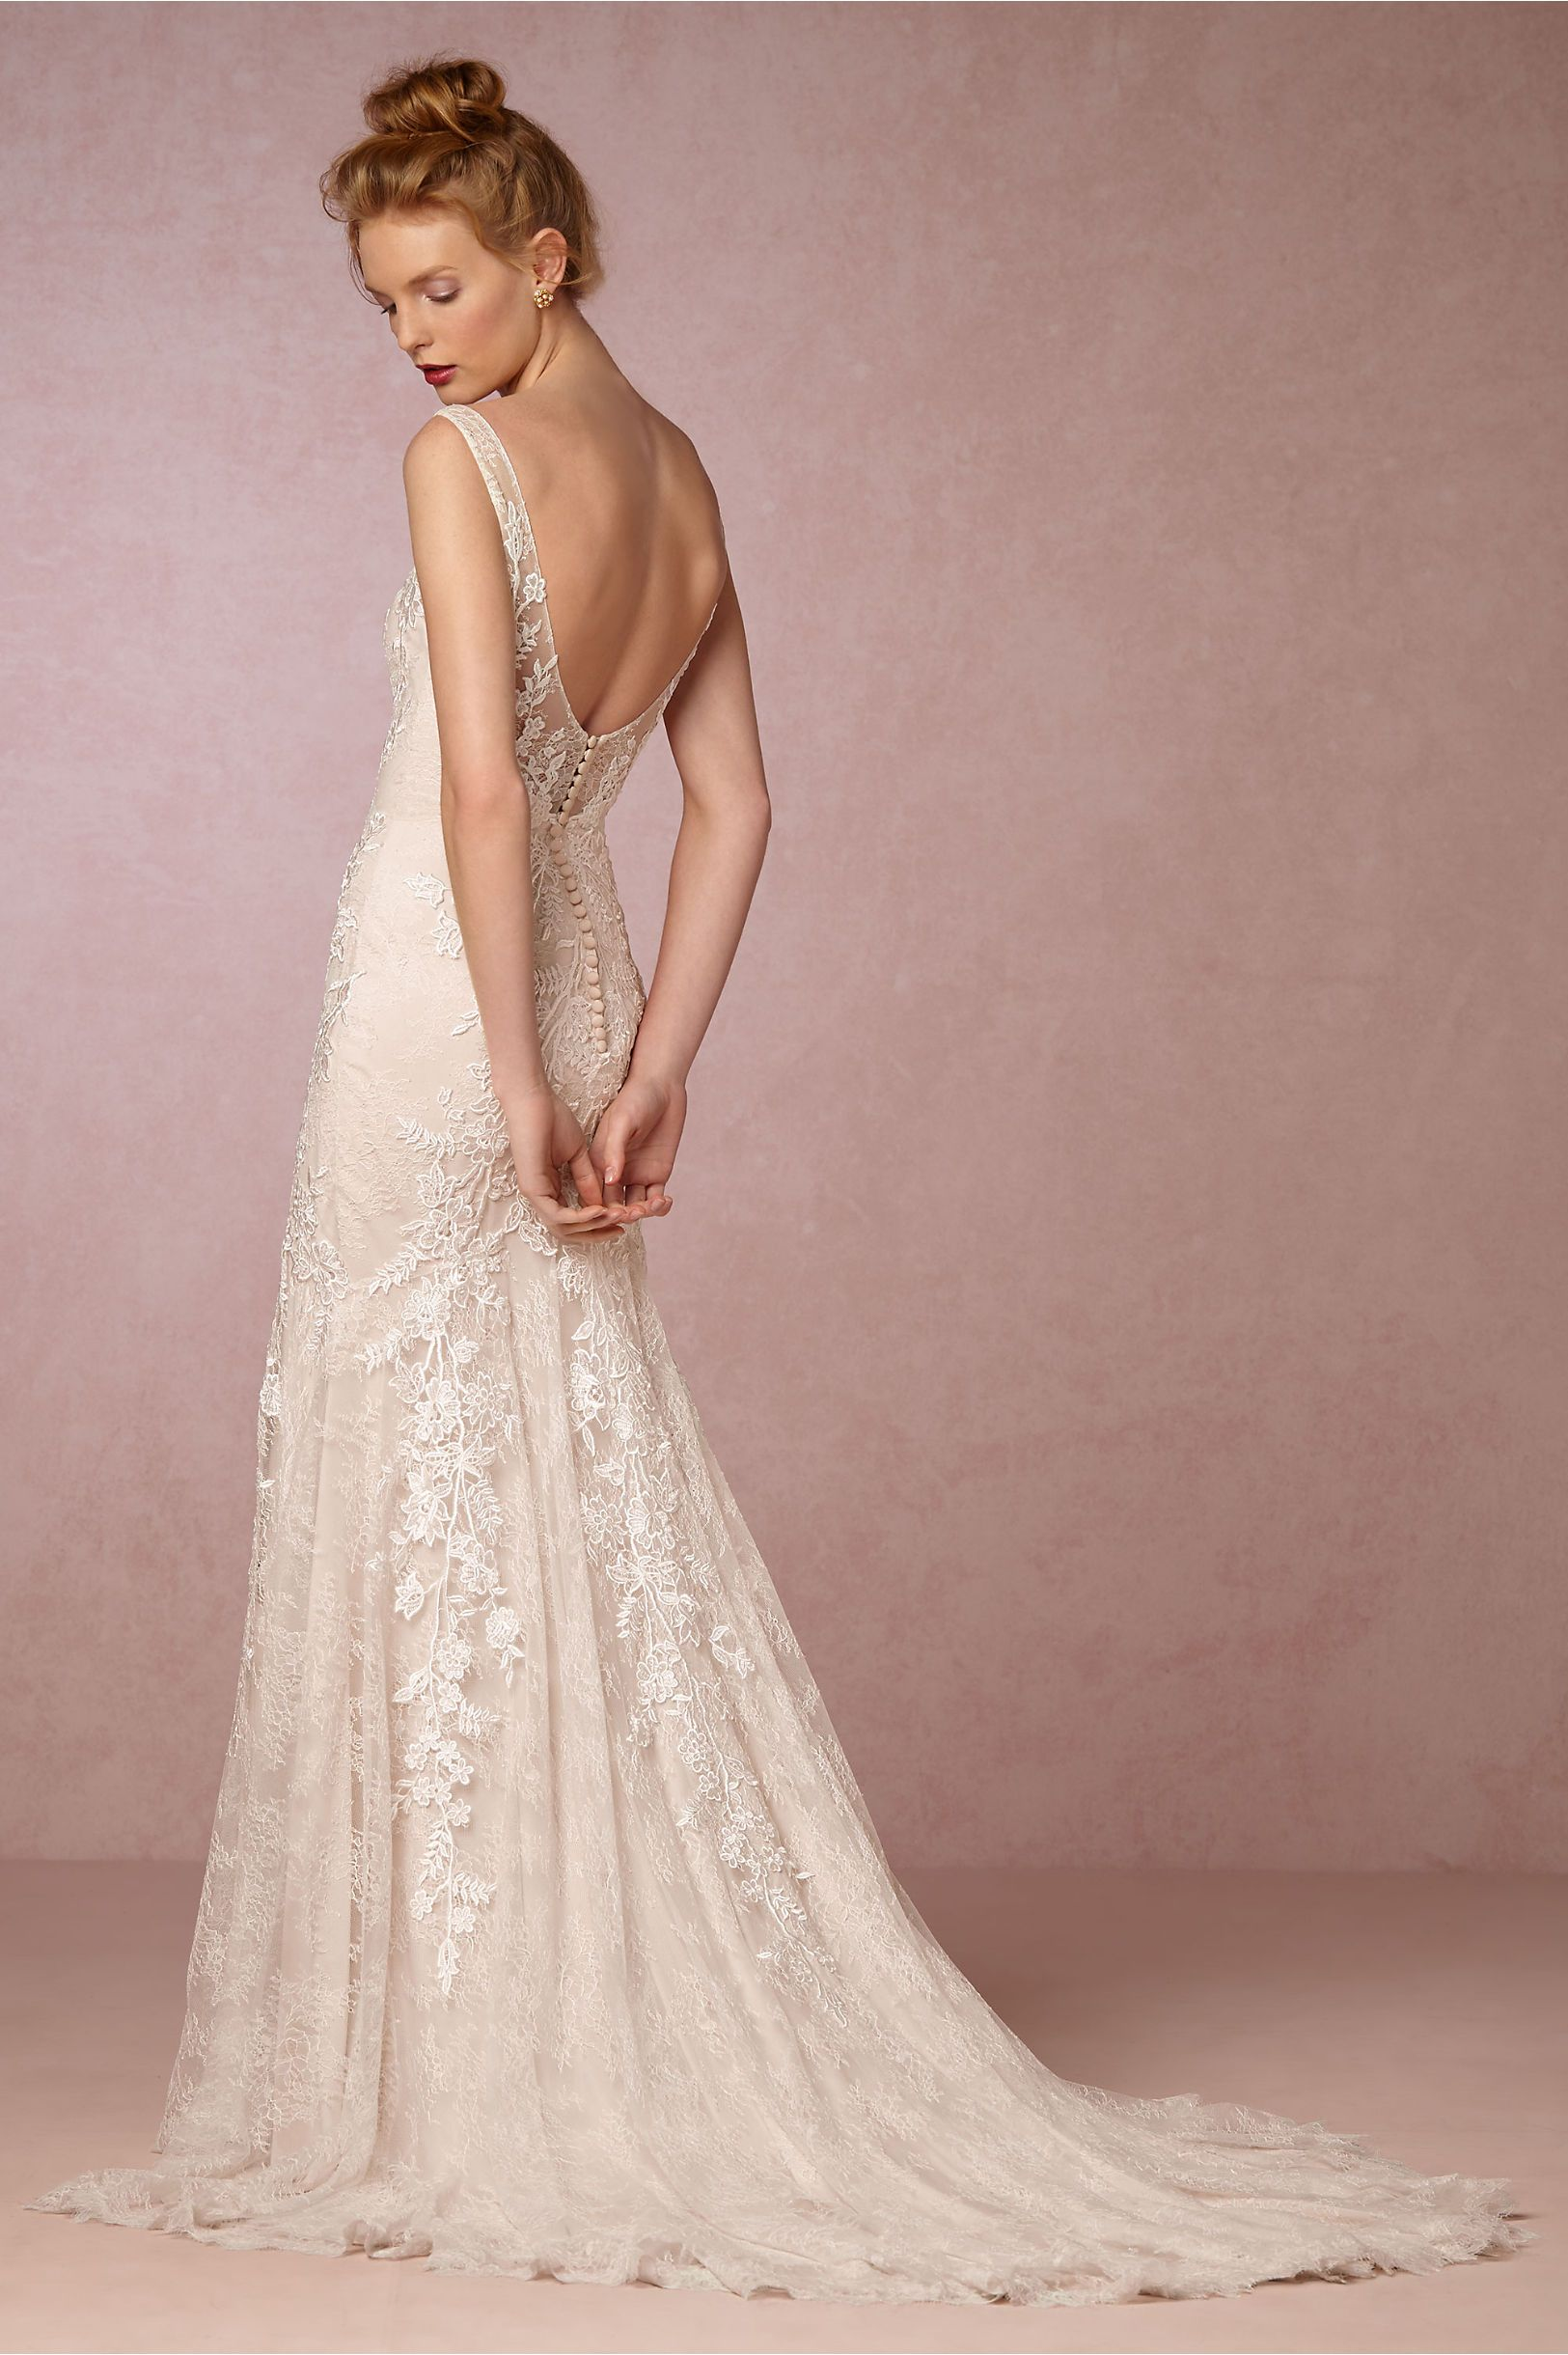 BHLDN Elisha Gown in Bride | BHLDN | Inspiration | Pinterest ...